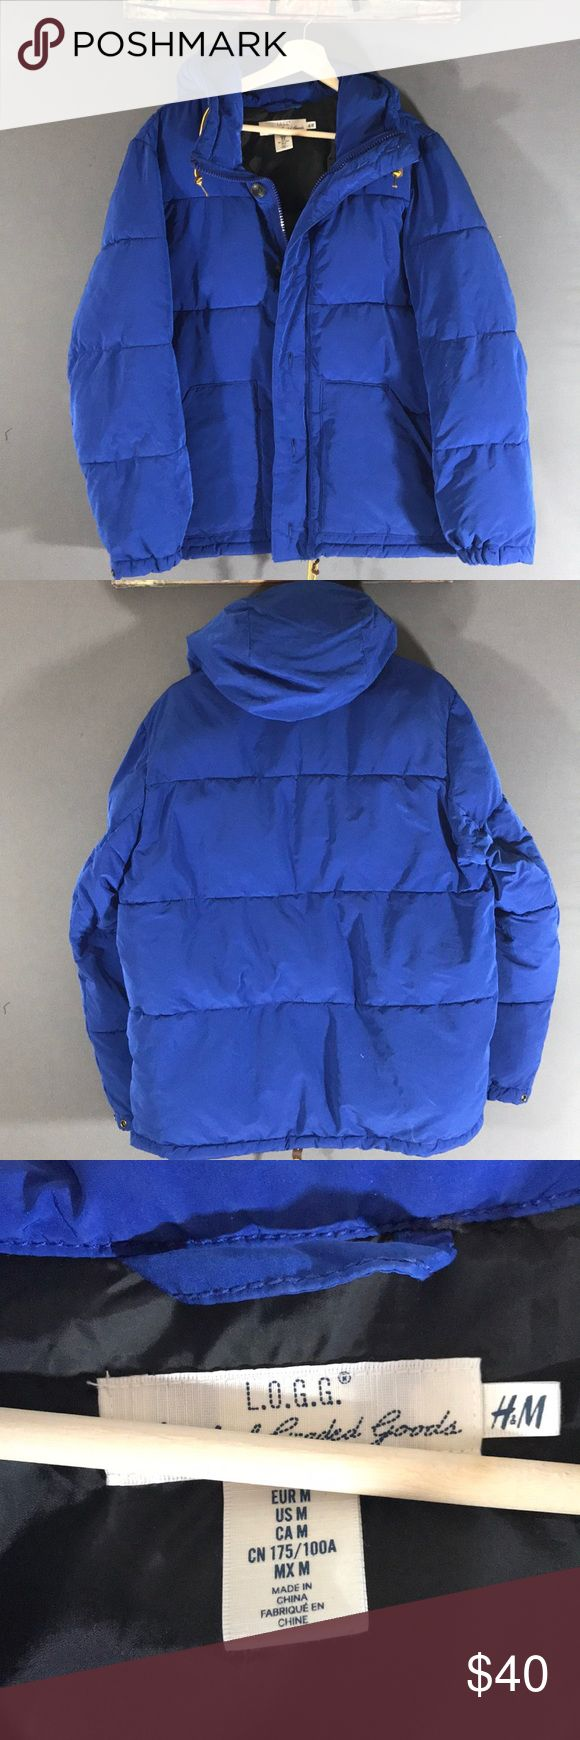 H&M men's puffer jacket with hood full zip This item is pre-owned H&M men's blue puffer jacket full zip with button size M excellent condition H&M Jackets & Coats Puffers